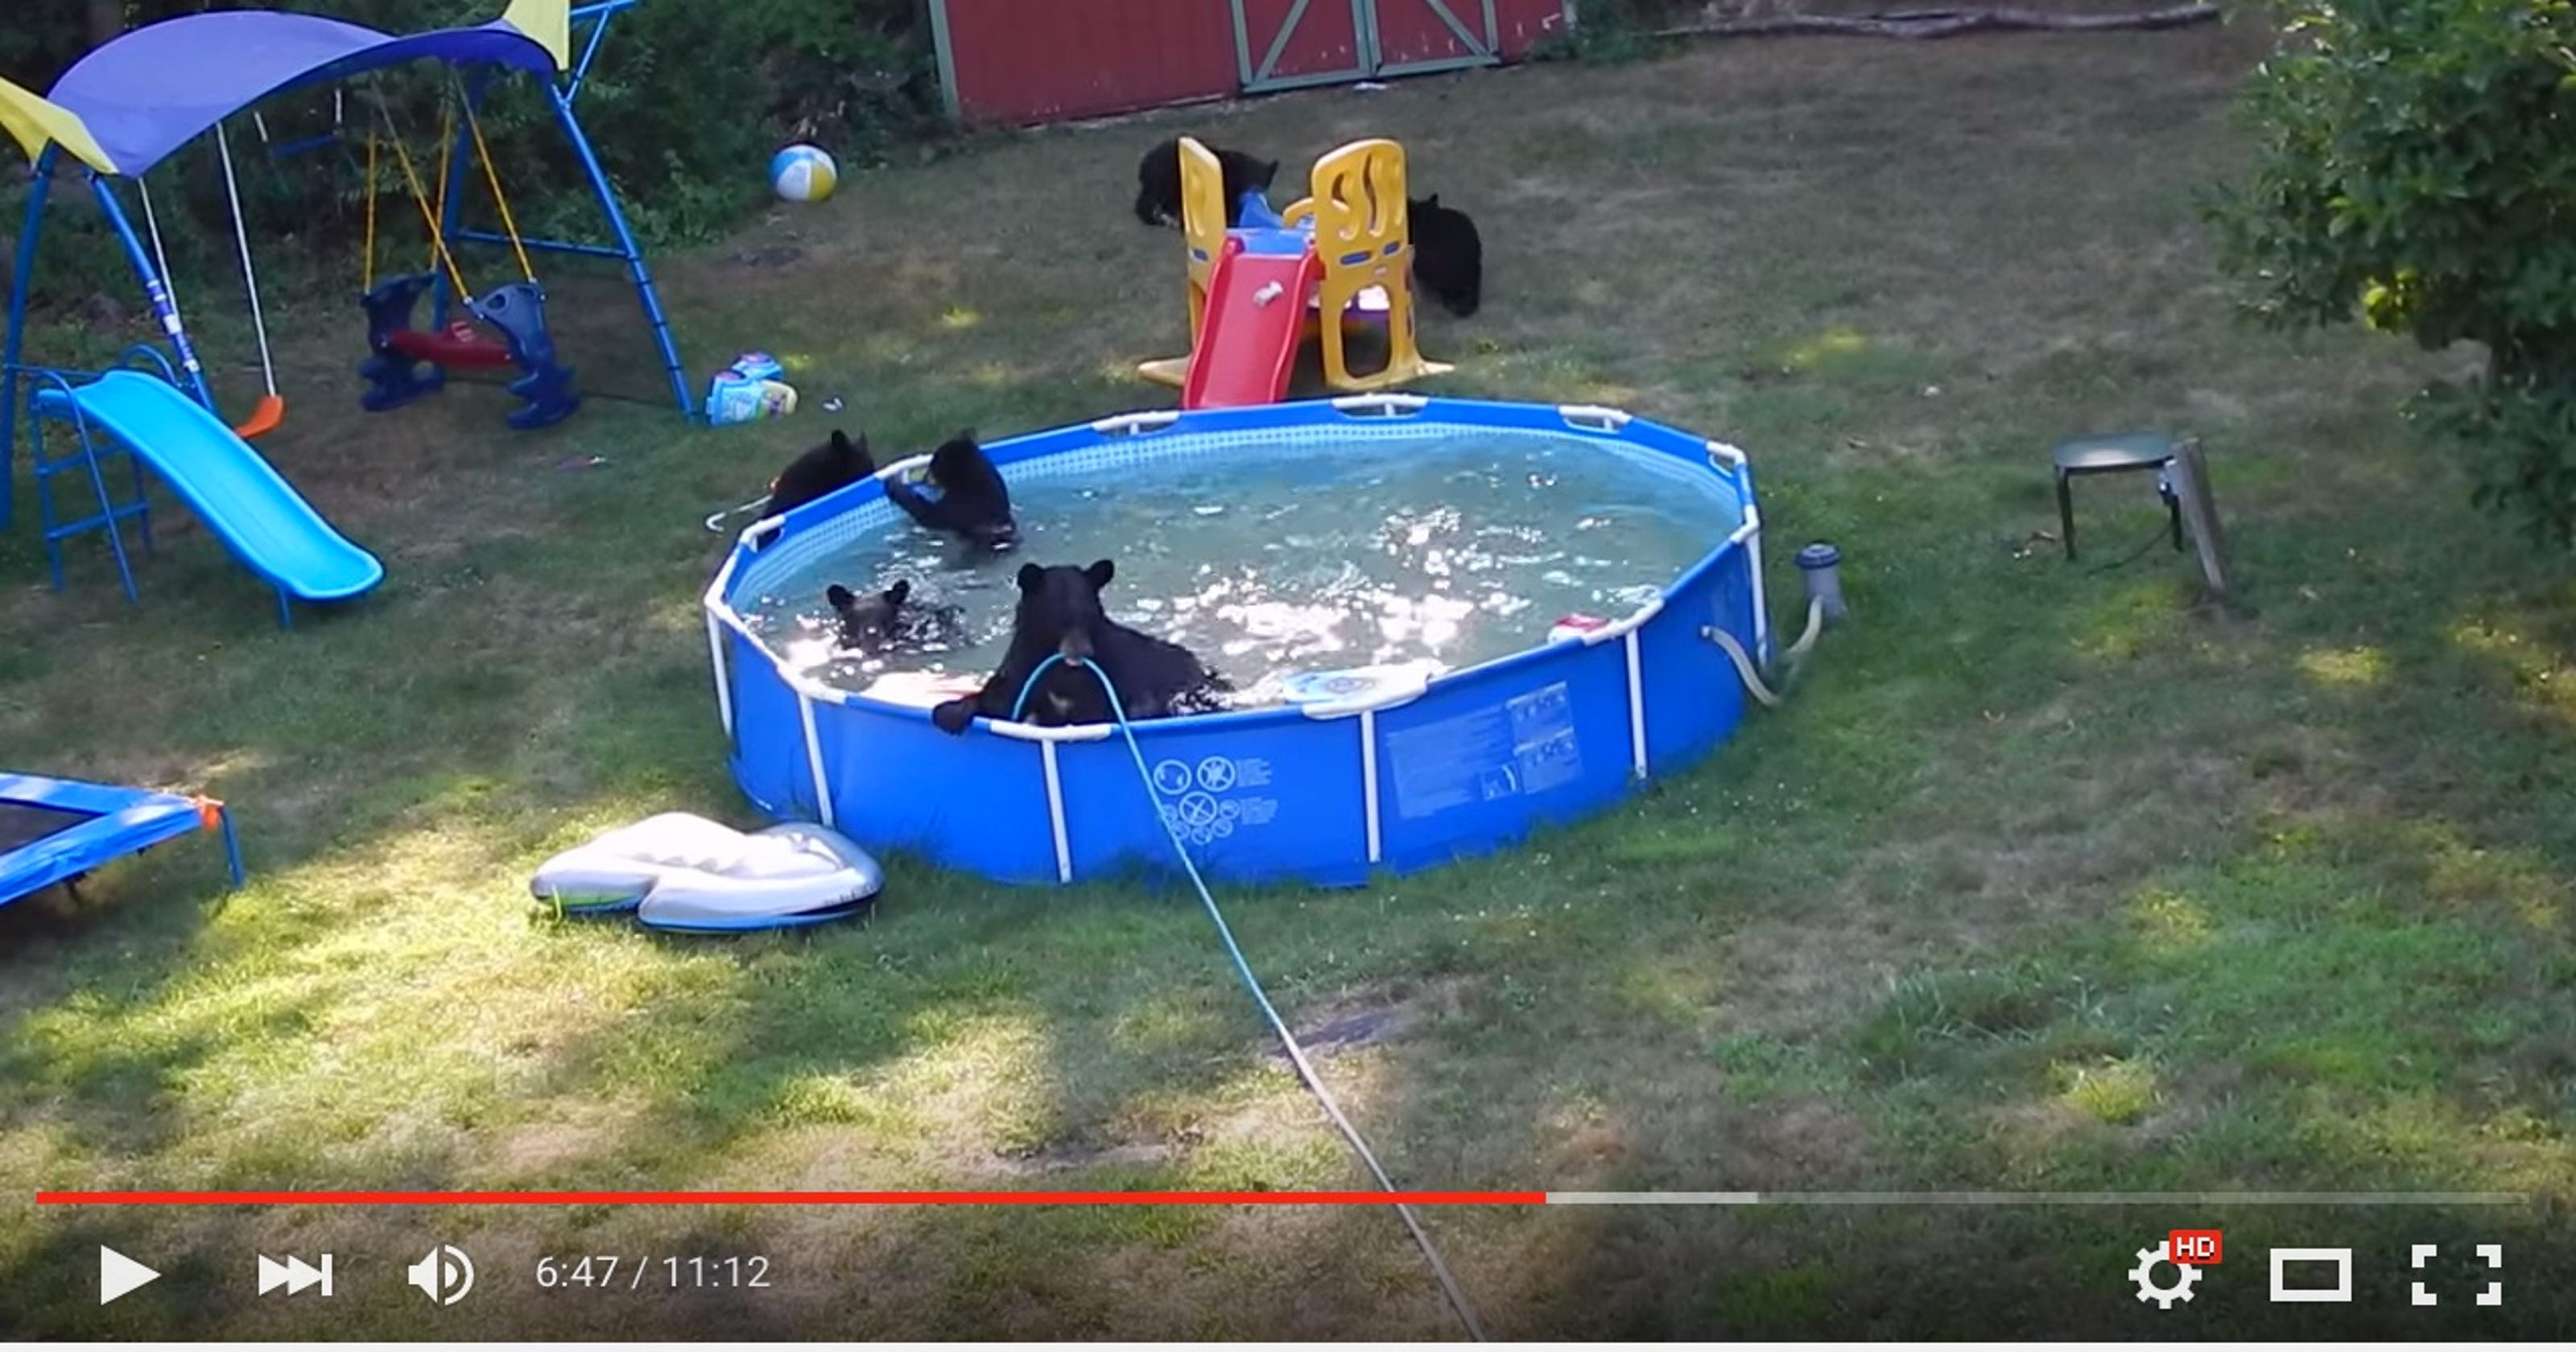 Bear family beats the heat with swim in n j family 39 s pool for Bears in swimming pool new jersey